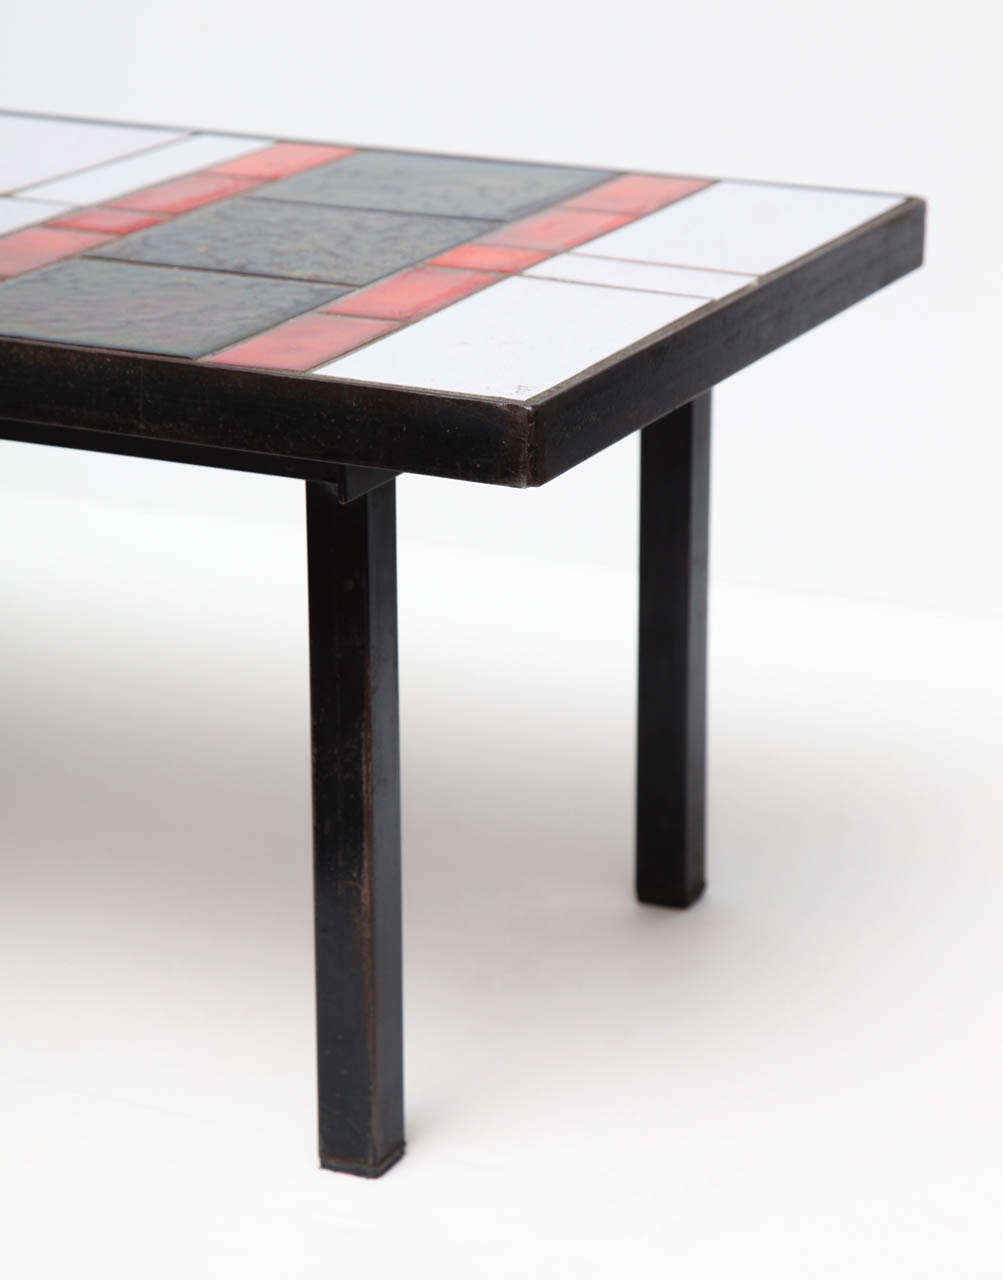 Glazed Ceramic Tile Coffee Table For Sale At 1stdibs